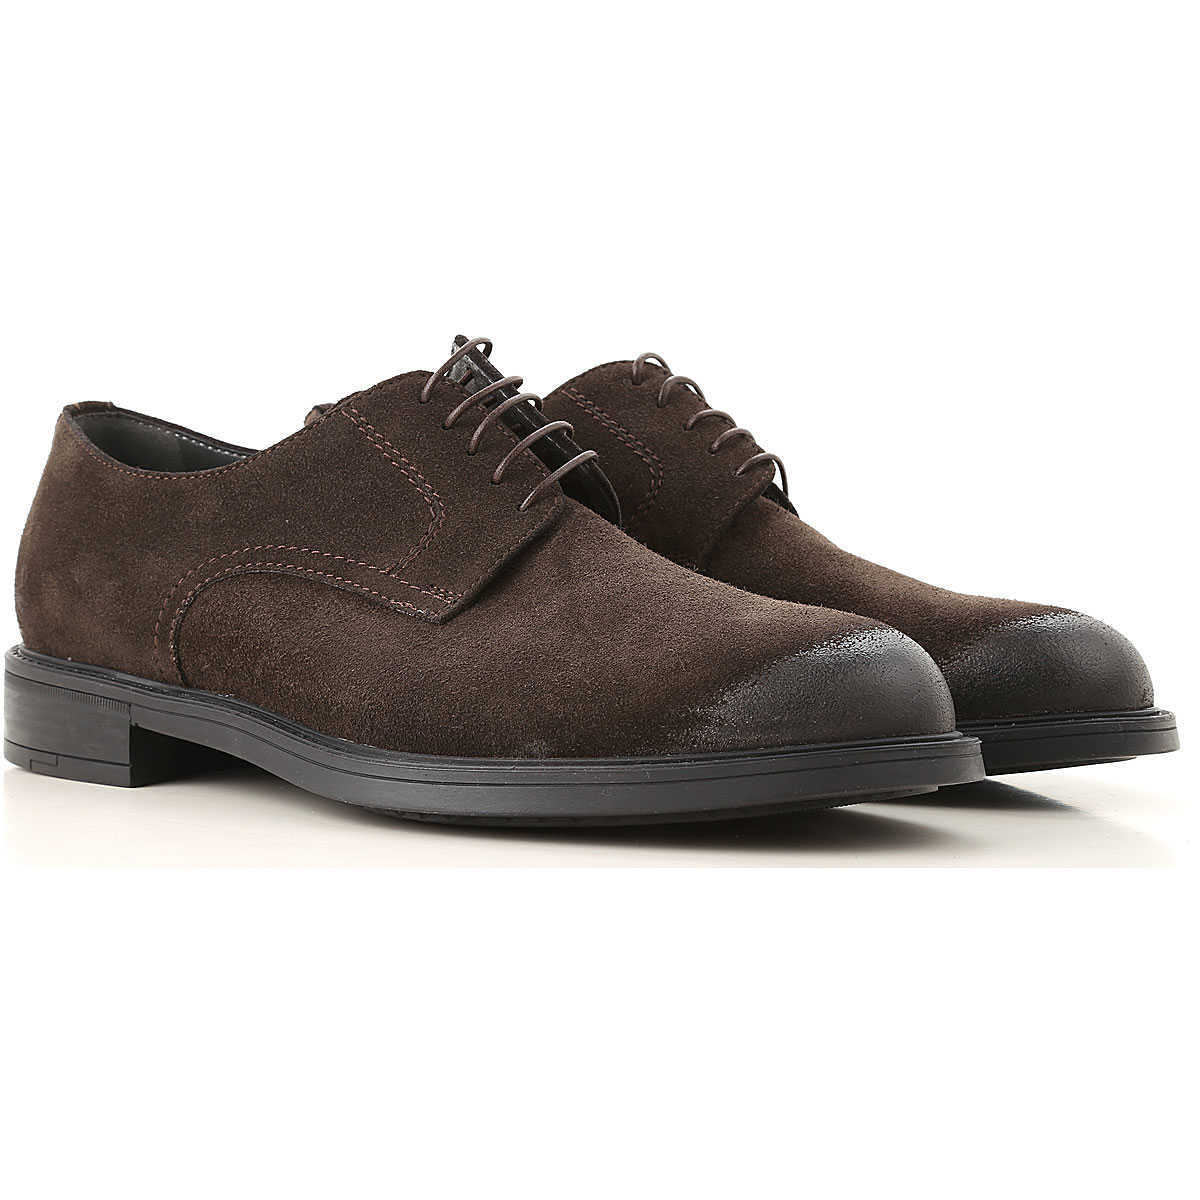 Moreschi Lace Up Shoes for Men Oxfords Derbies and Brogues On Sale - GOOFASH